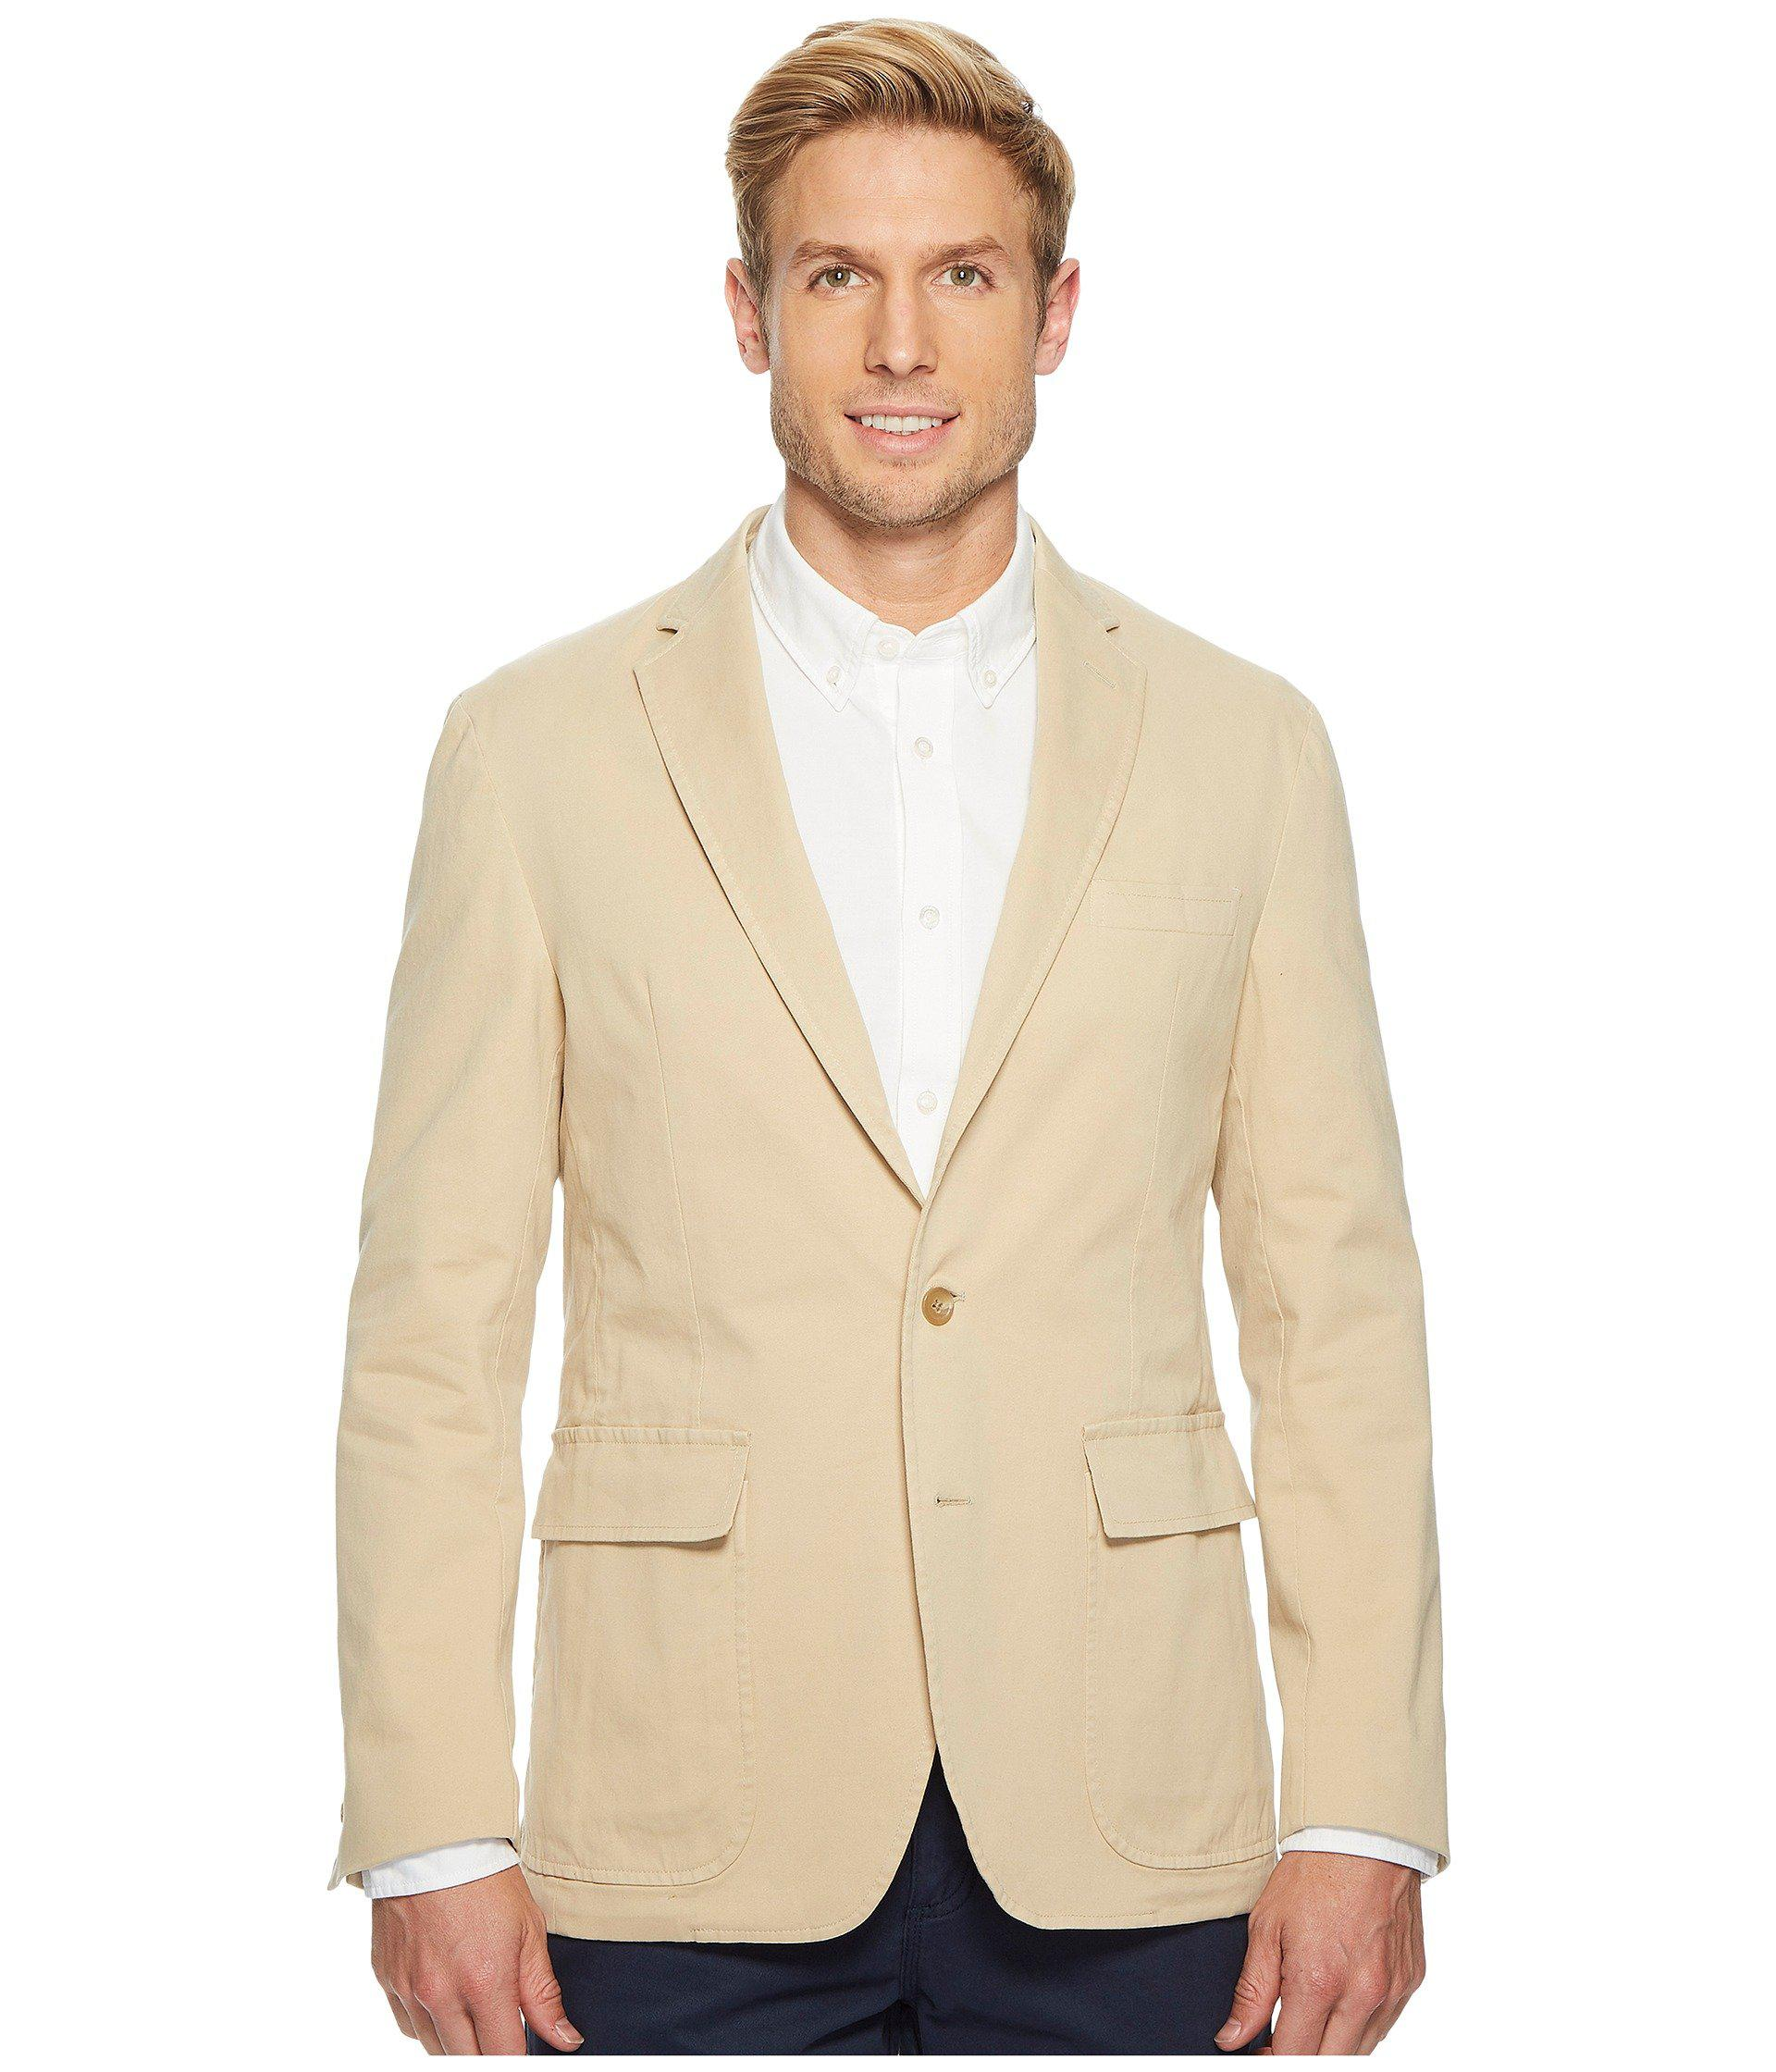 3bbf8fabfca Lyst - Polo Ralph Lauren Garment Dyed Cotton Stretch Sportcoat in ...